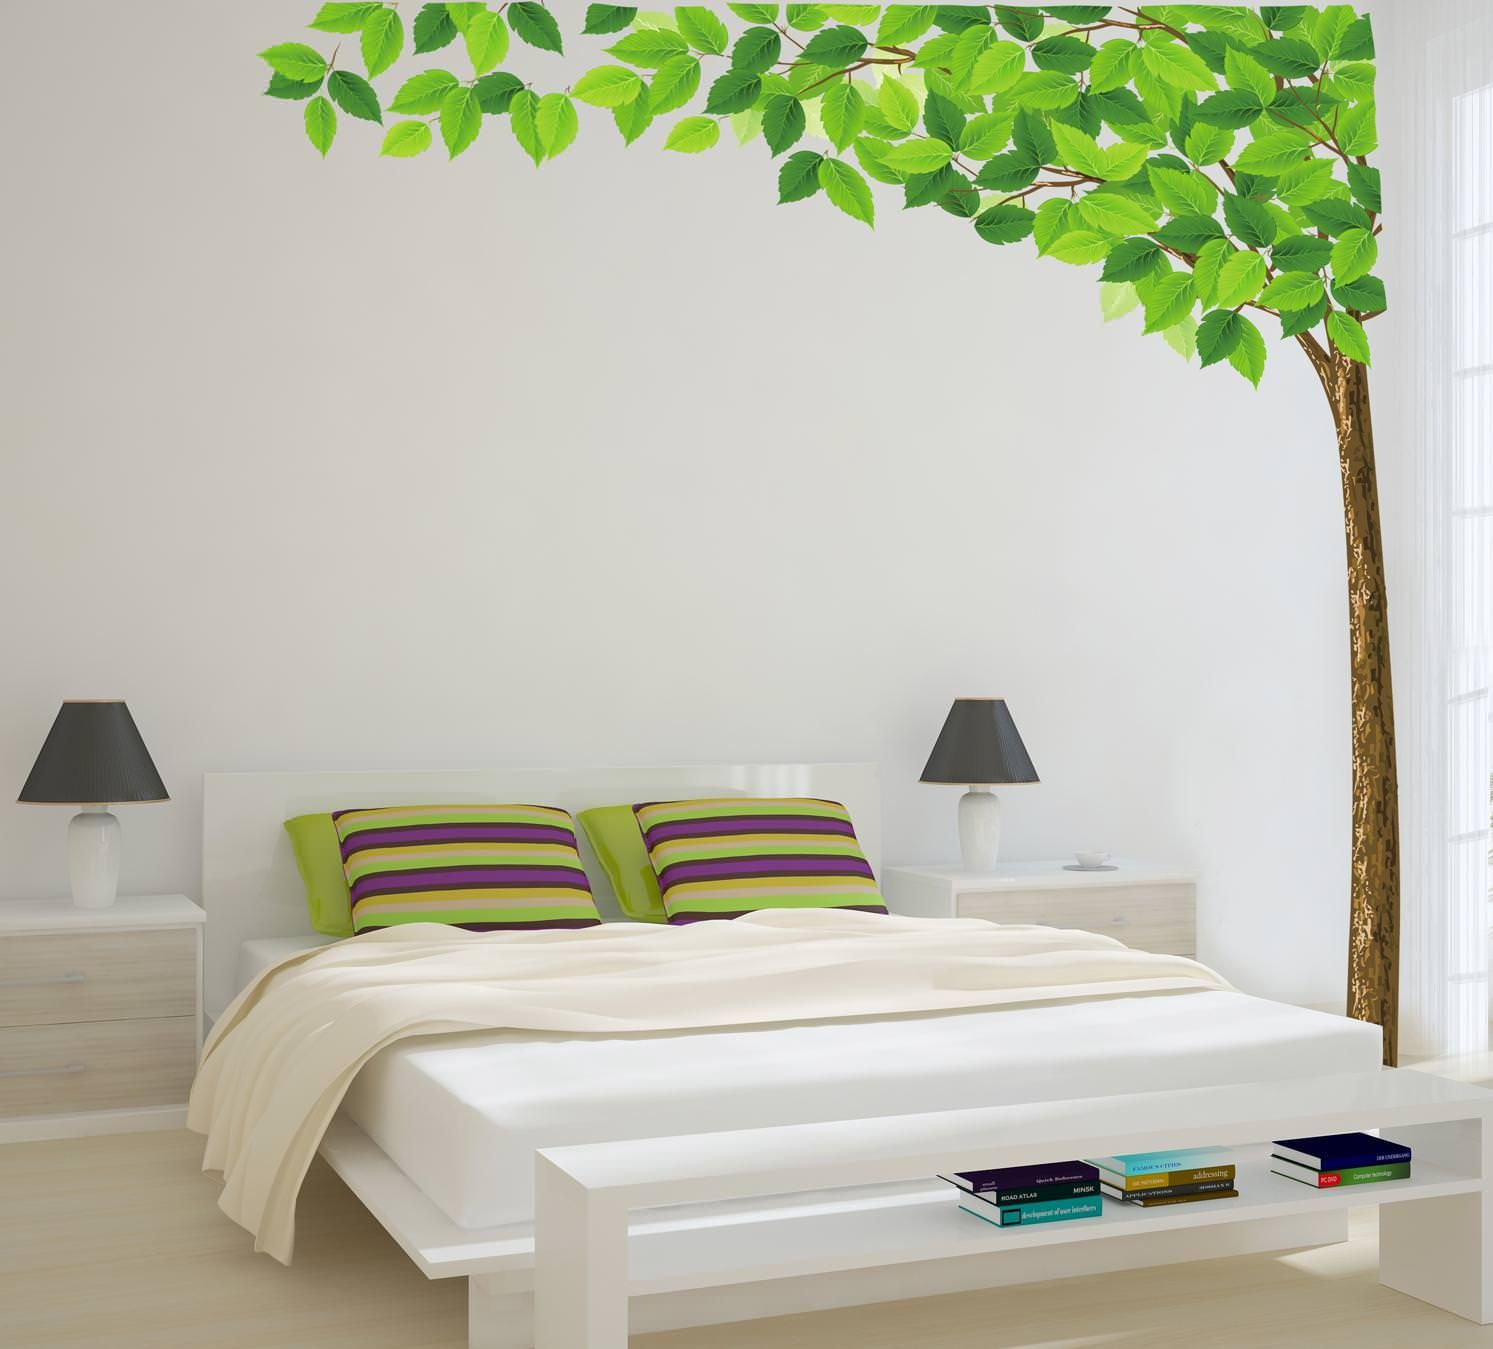 Lovely How Make Tree Wall Sticker Decal Decals Removable Scenery Stickers Home  Decor Alex Nld